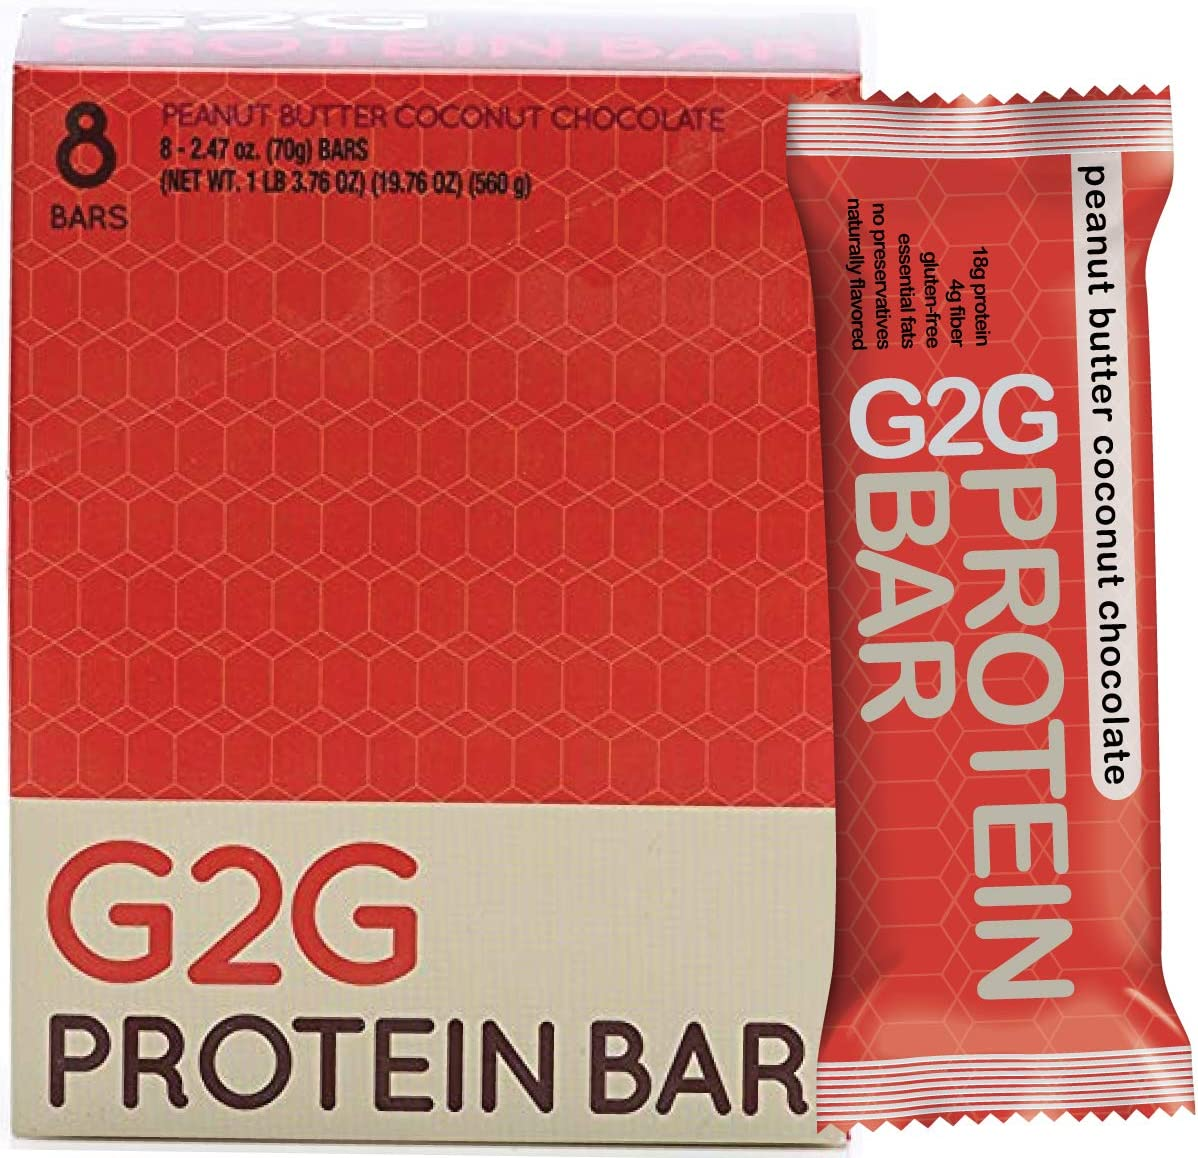 G2G Protein Bar, Peanut Butter Coconut Chocolate, 8 Count Box